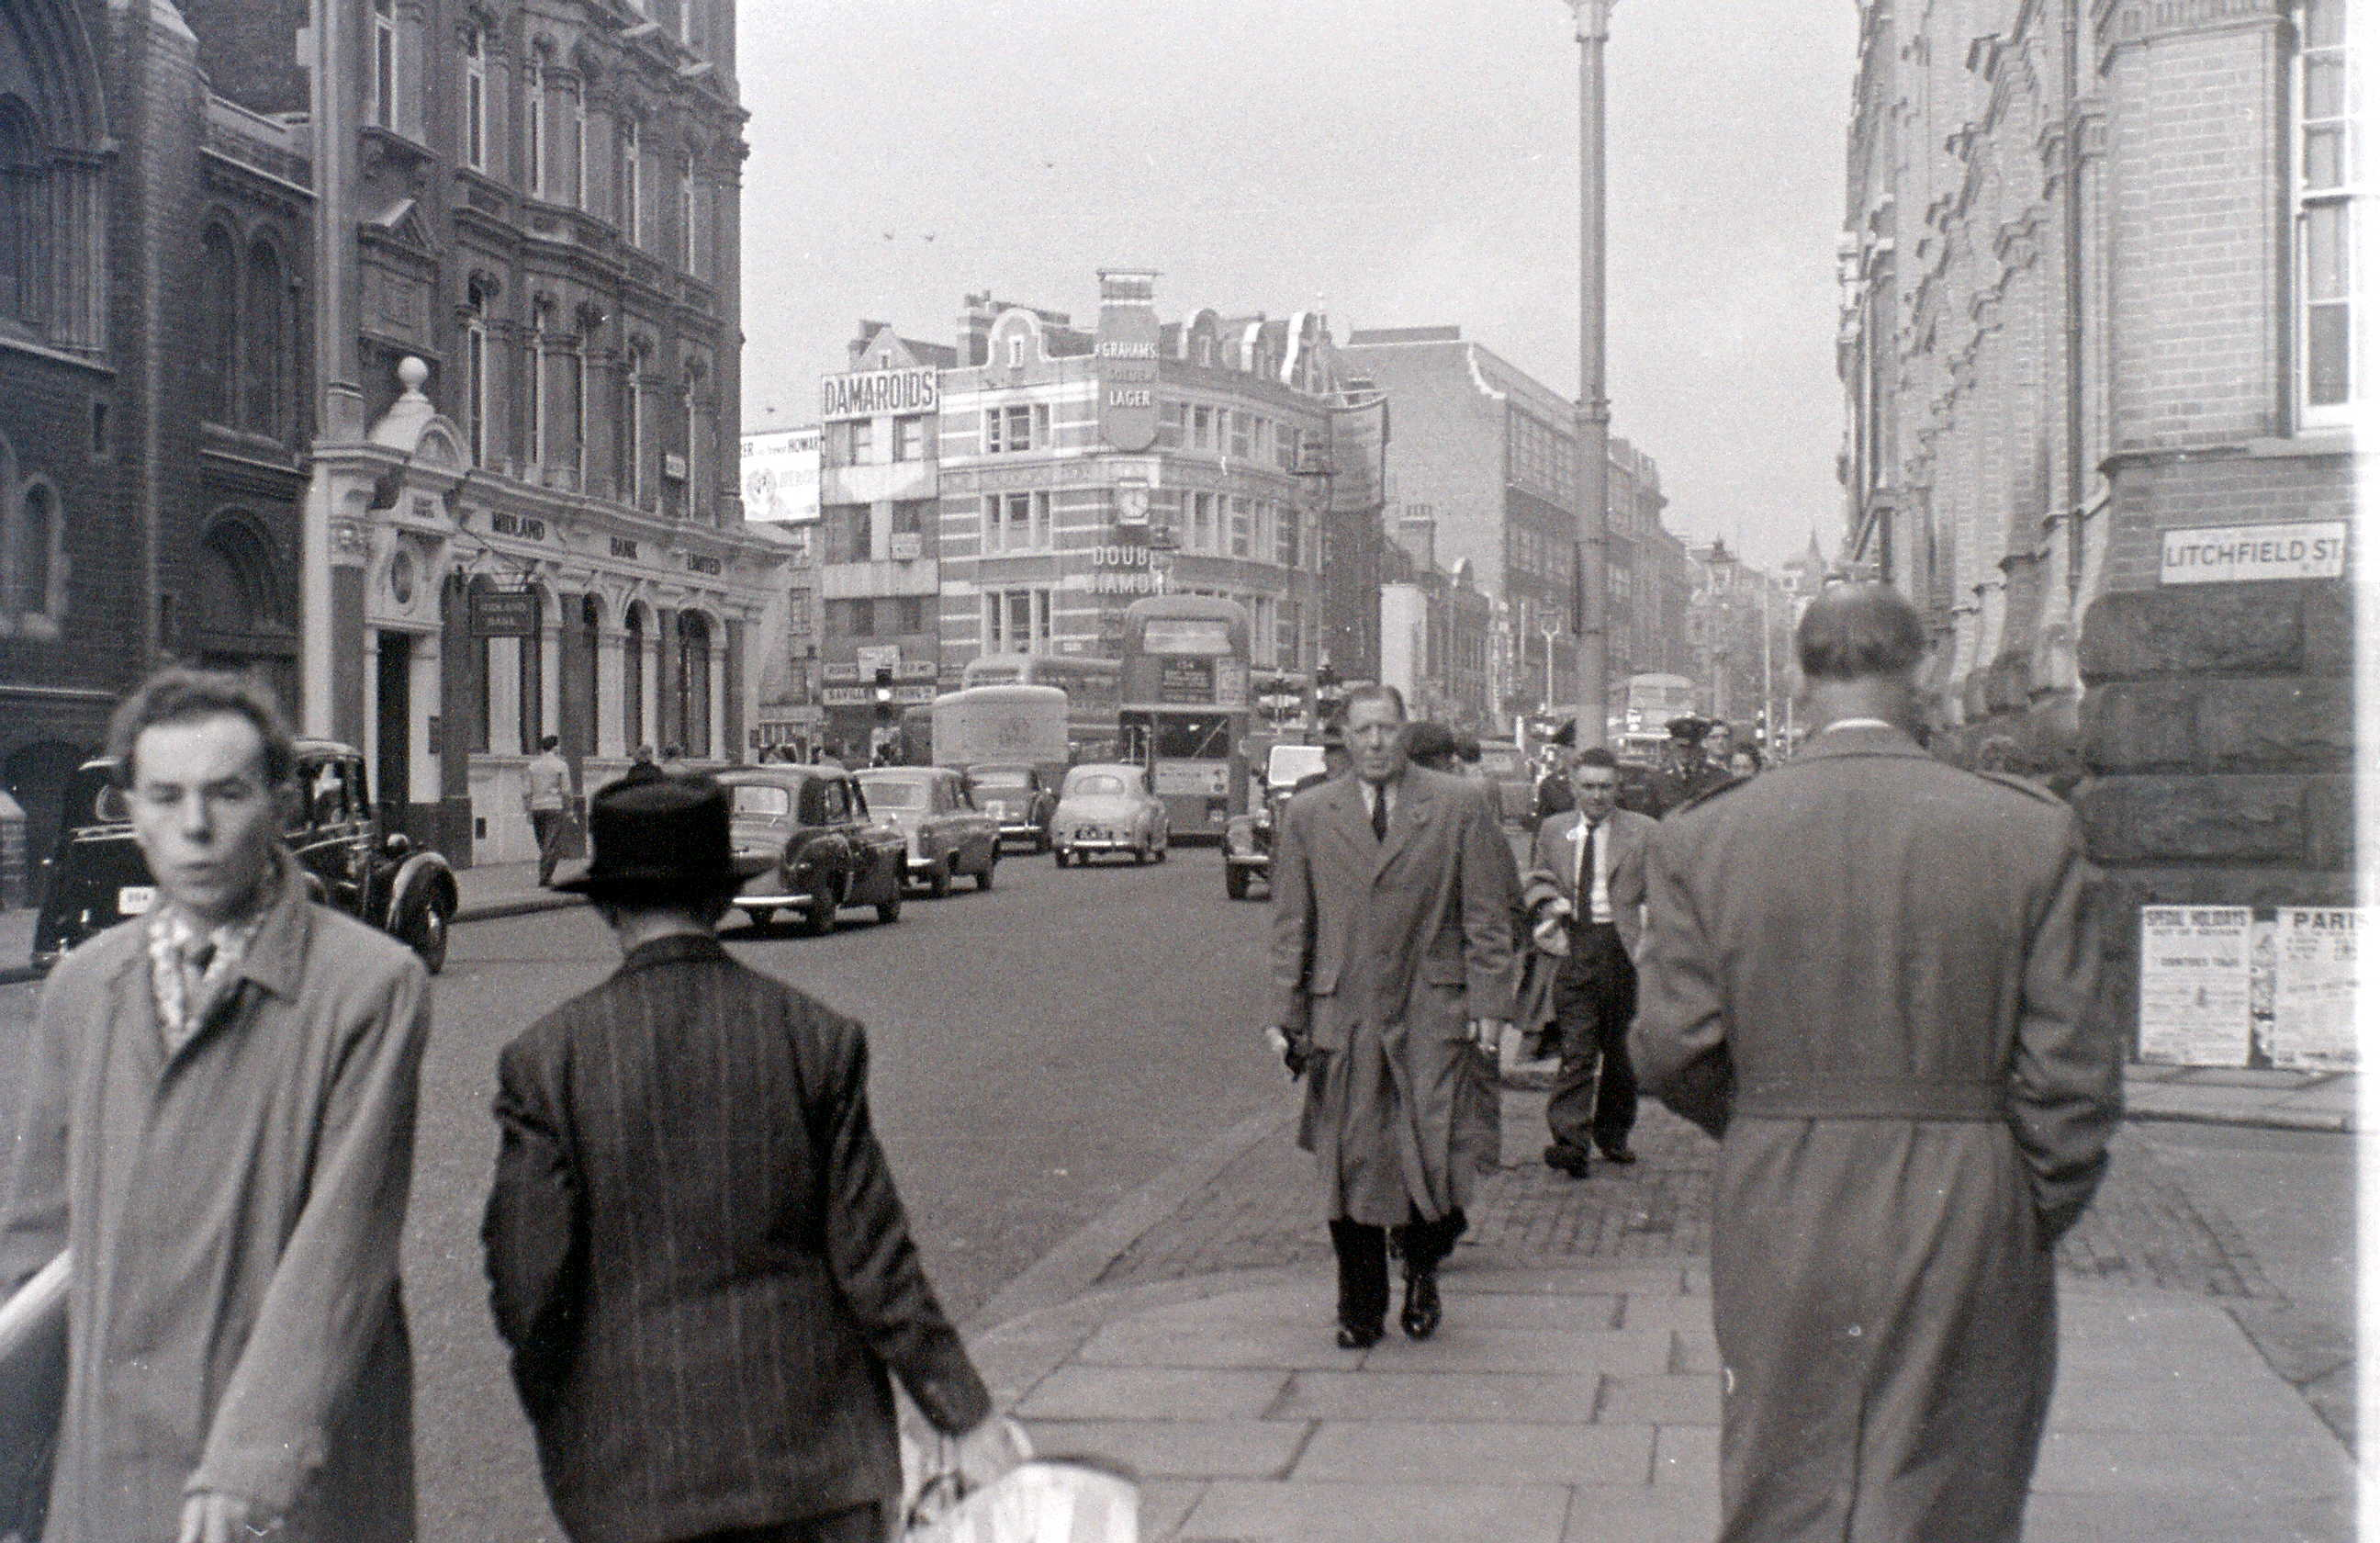 Charing Cross Road, London, 5 November 1955